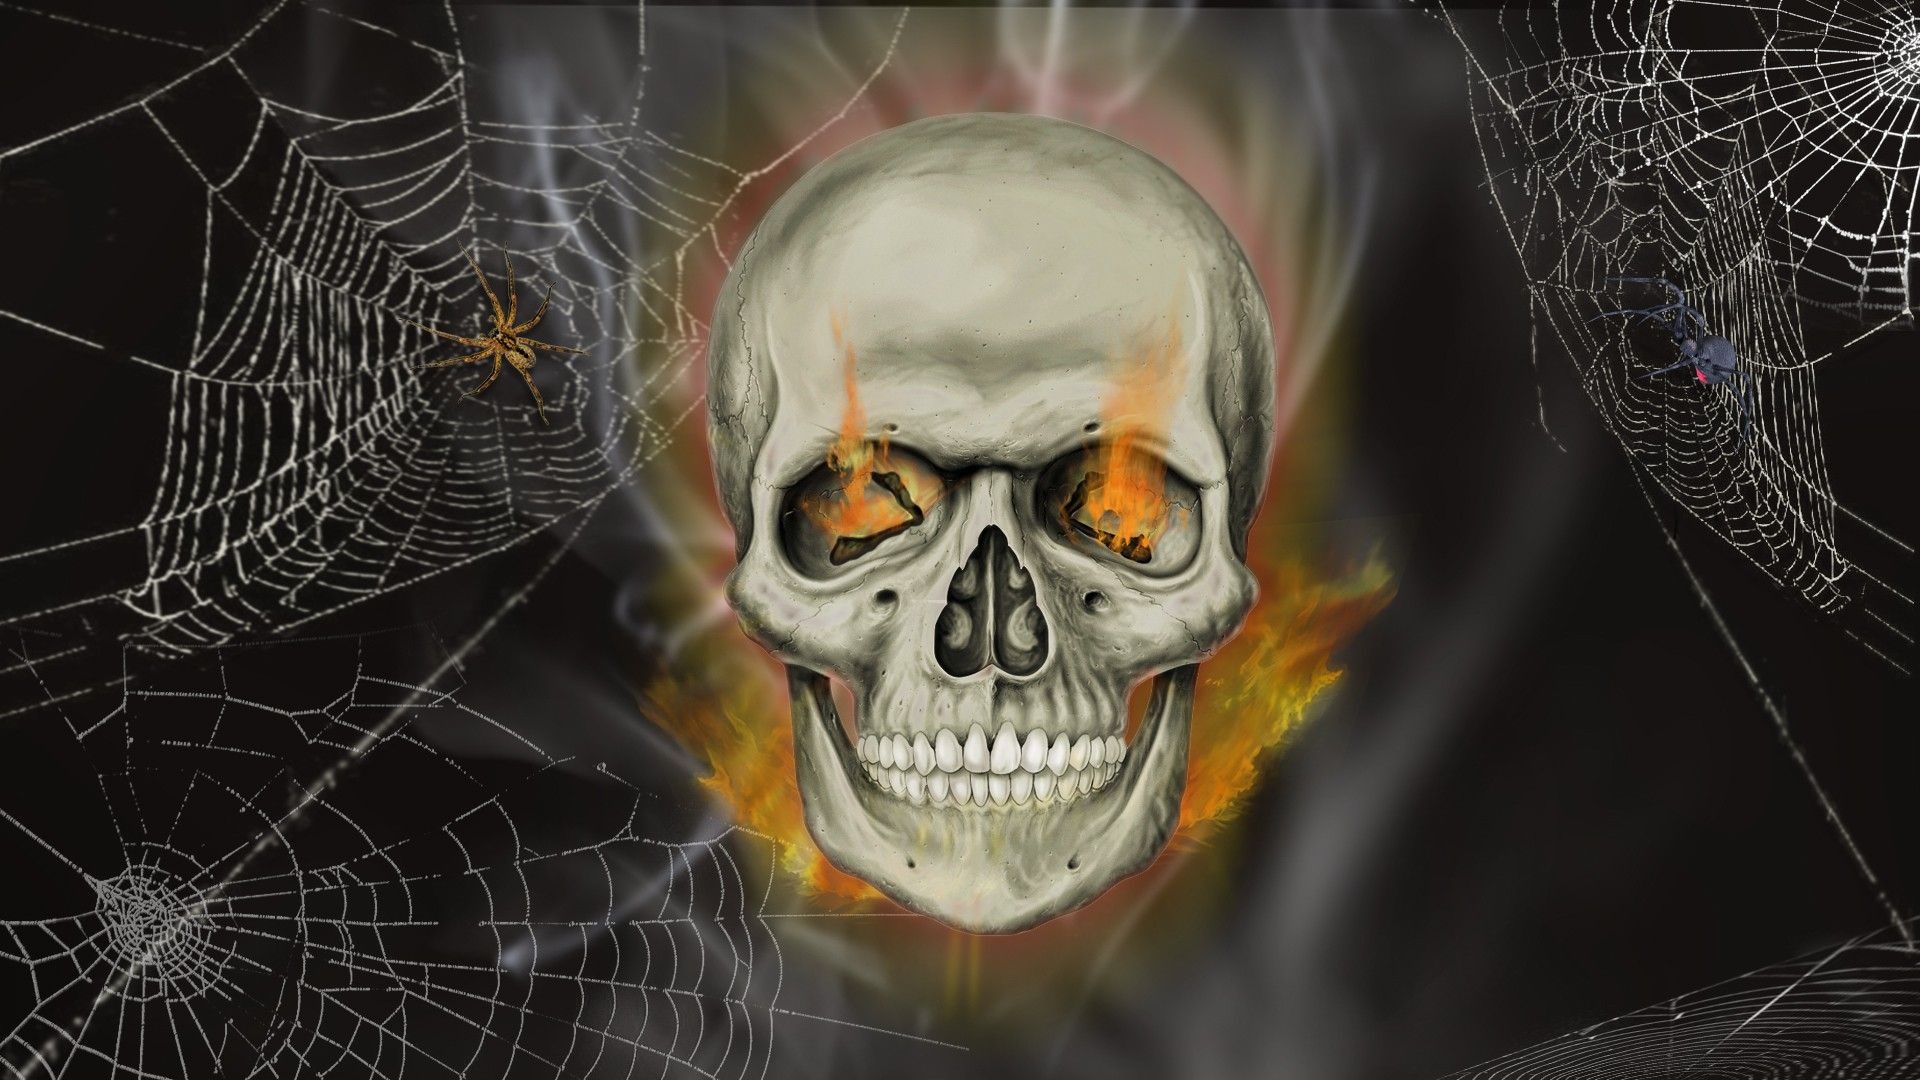 Good Wallpaper Halloween Skeleton - 97279db5fb7c7ba07be5b81c62c72db7  Perfect Image Reference_327010.jpg